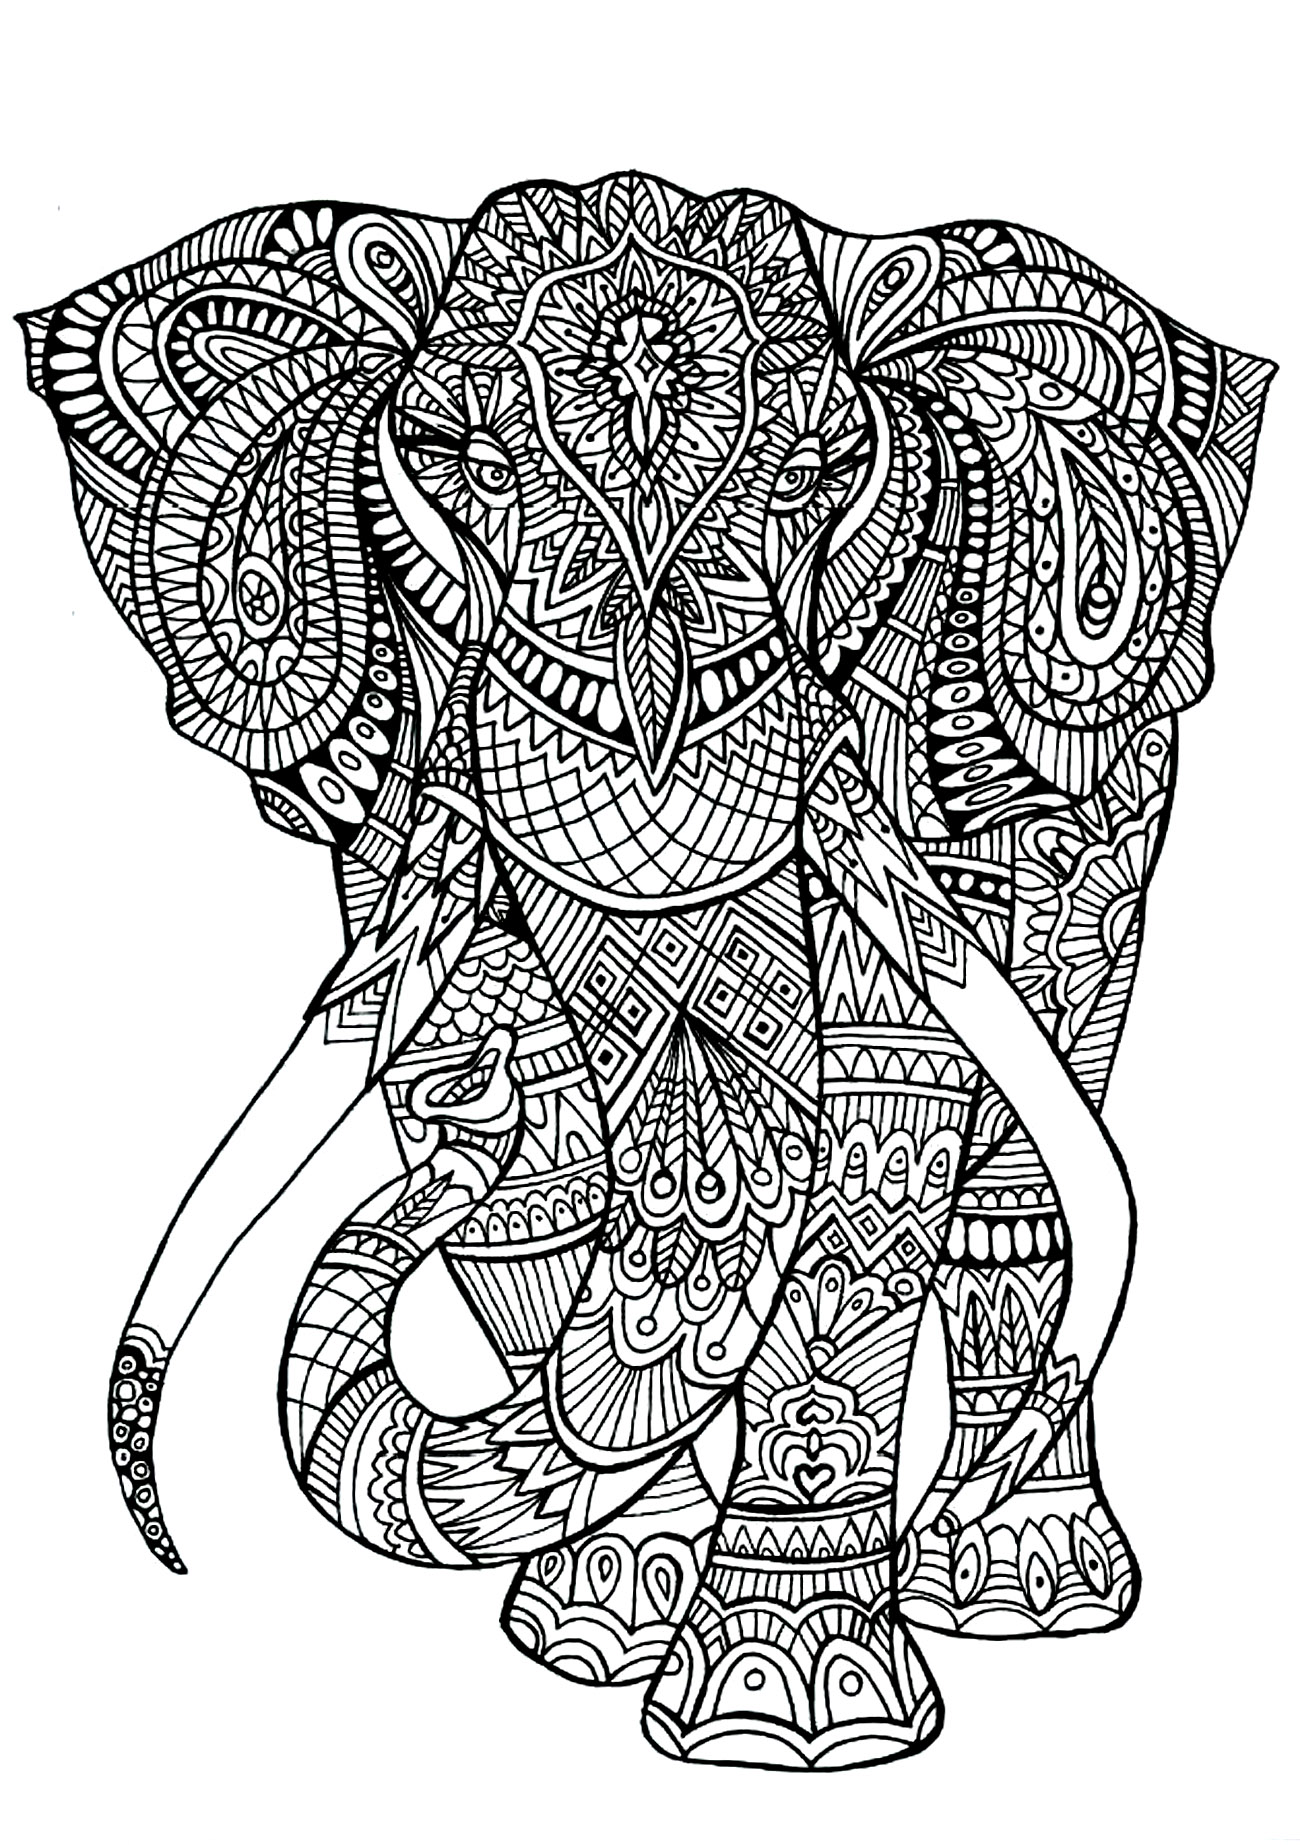 Zen Elephant Coloring Pages for Adults